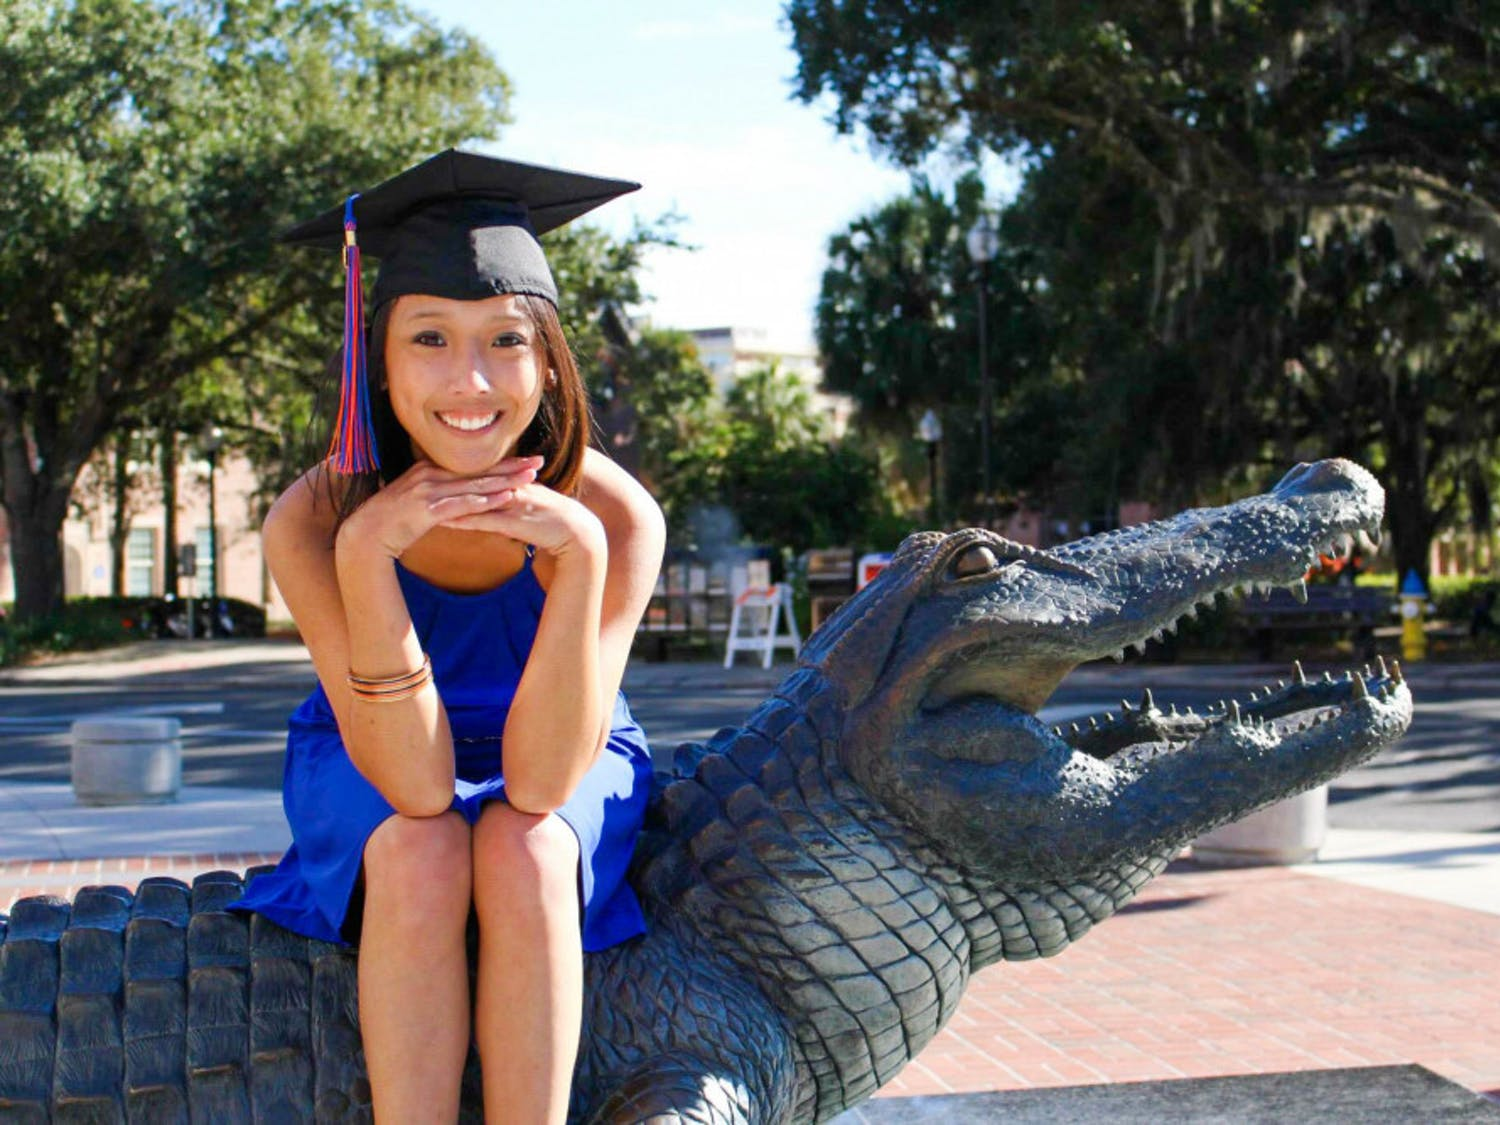 Roselle Derequito poses by the Bull Gator for her graduation photoshoot. Roselle graduated in 2014 with a bachelor's degree in Health Education.